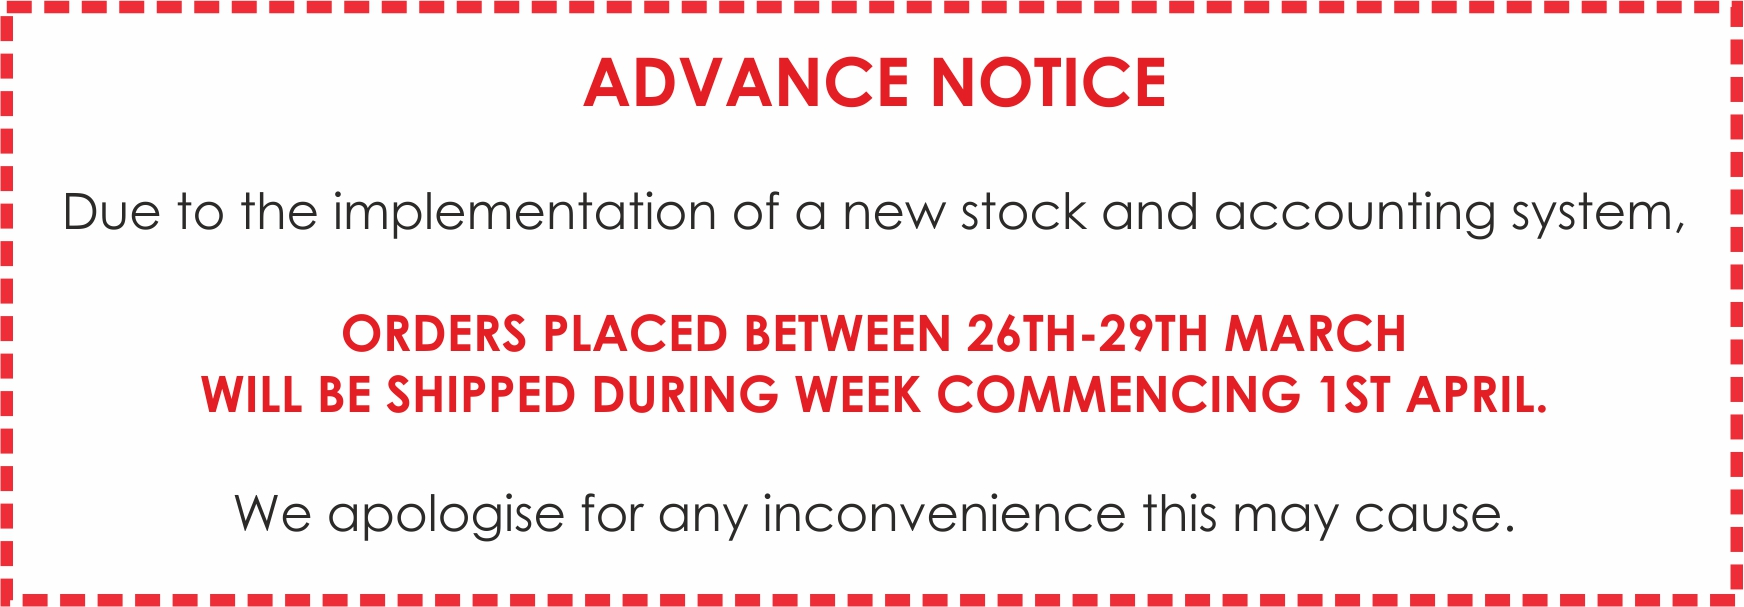 Delayed Delivery of orders between 26th-29th March